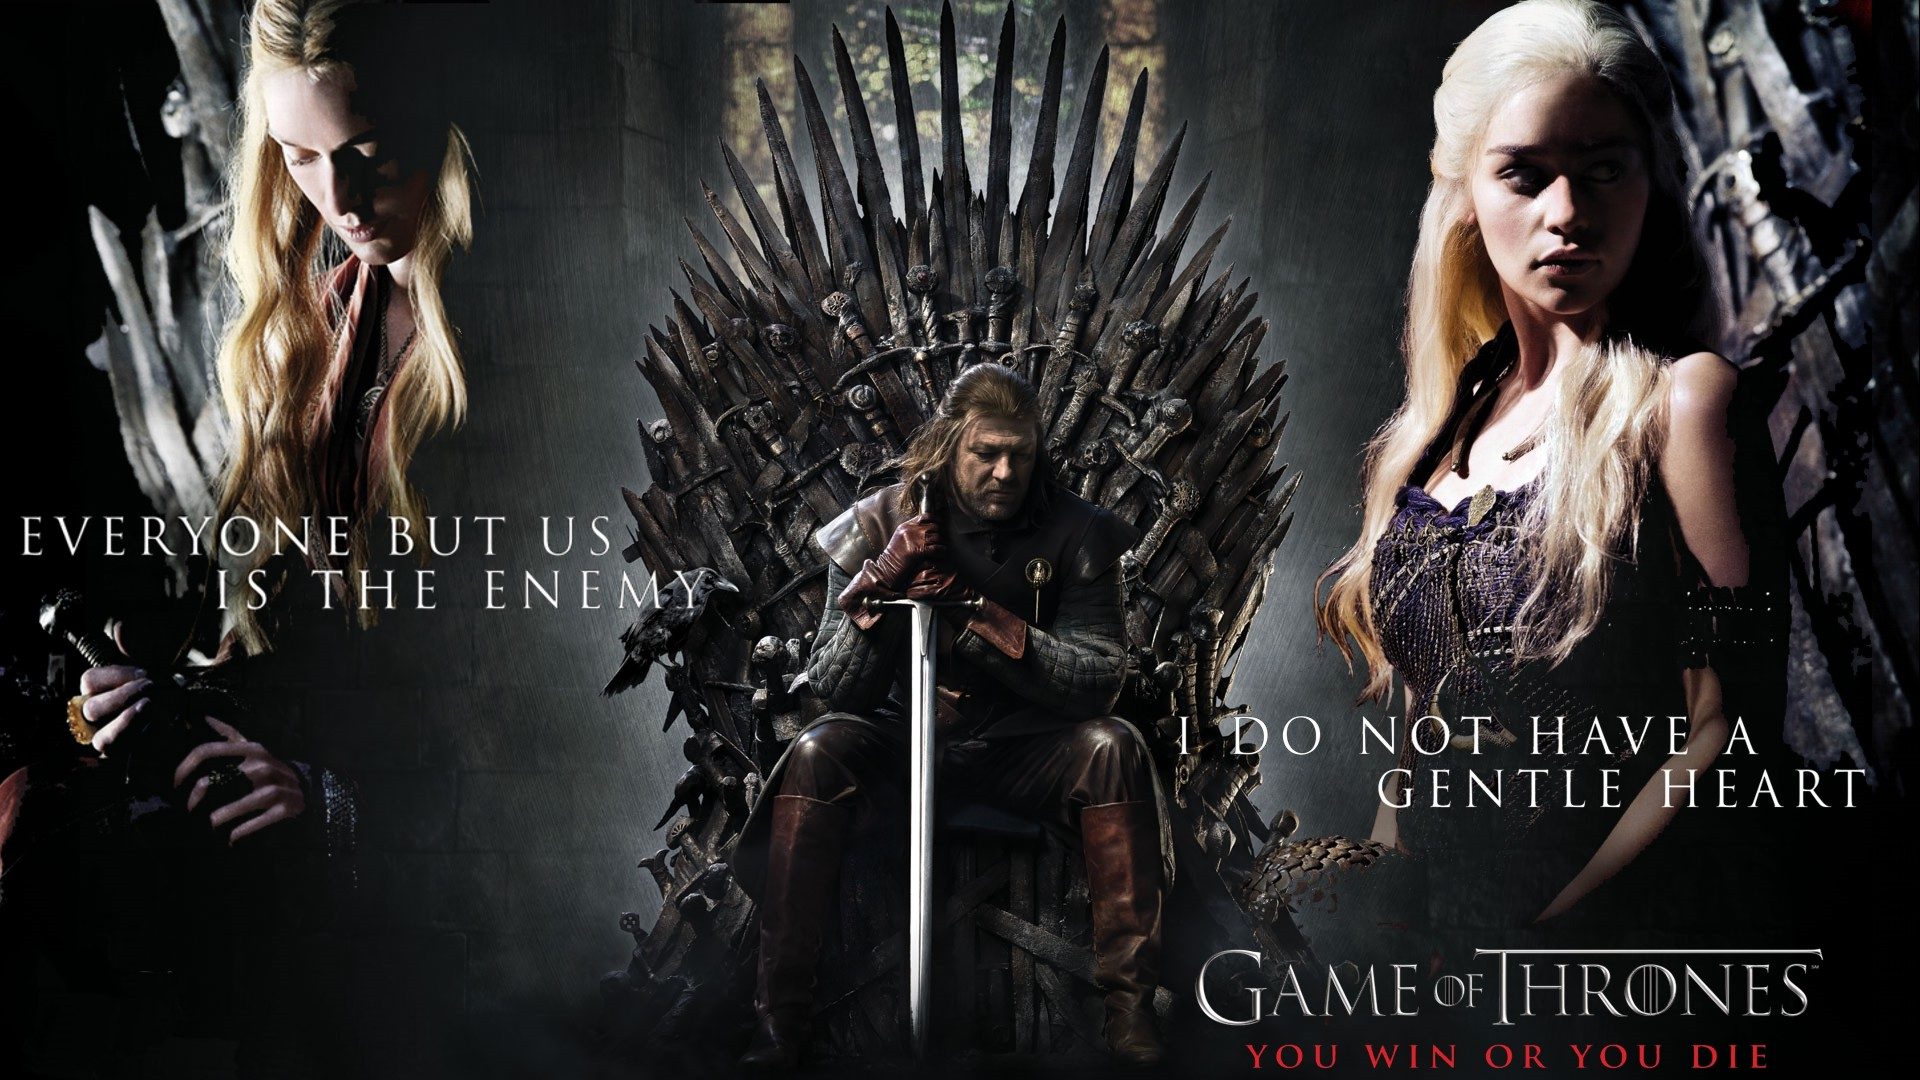 Game of Thrones background download Wallpapers Backgrounds 1920x1080